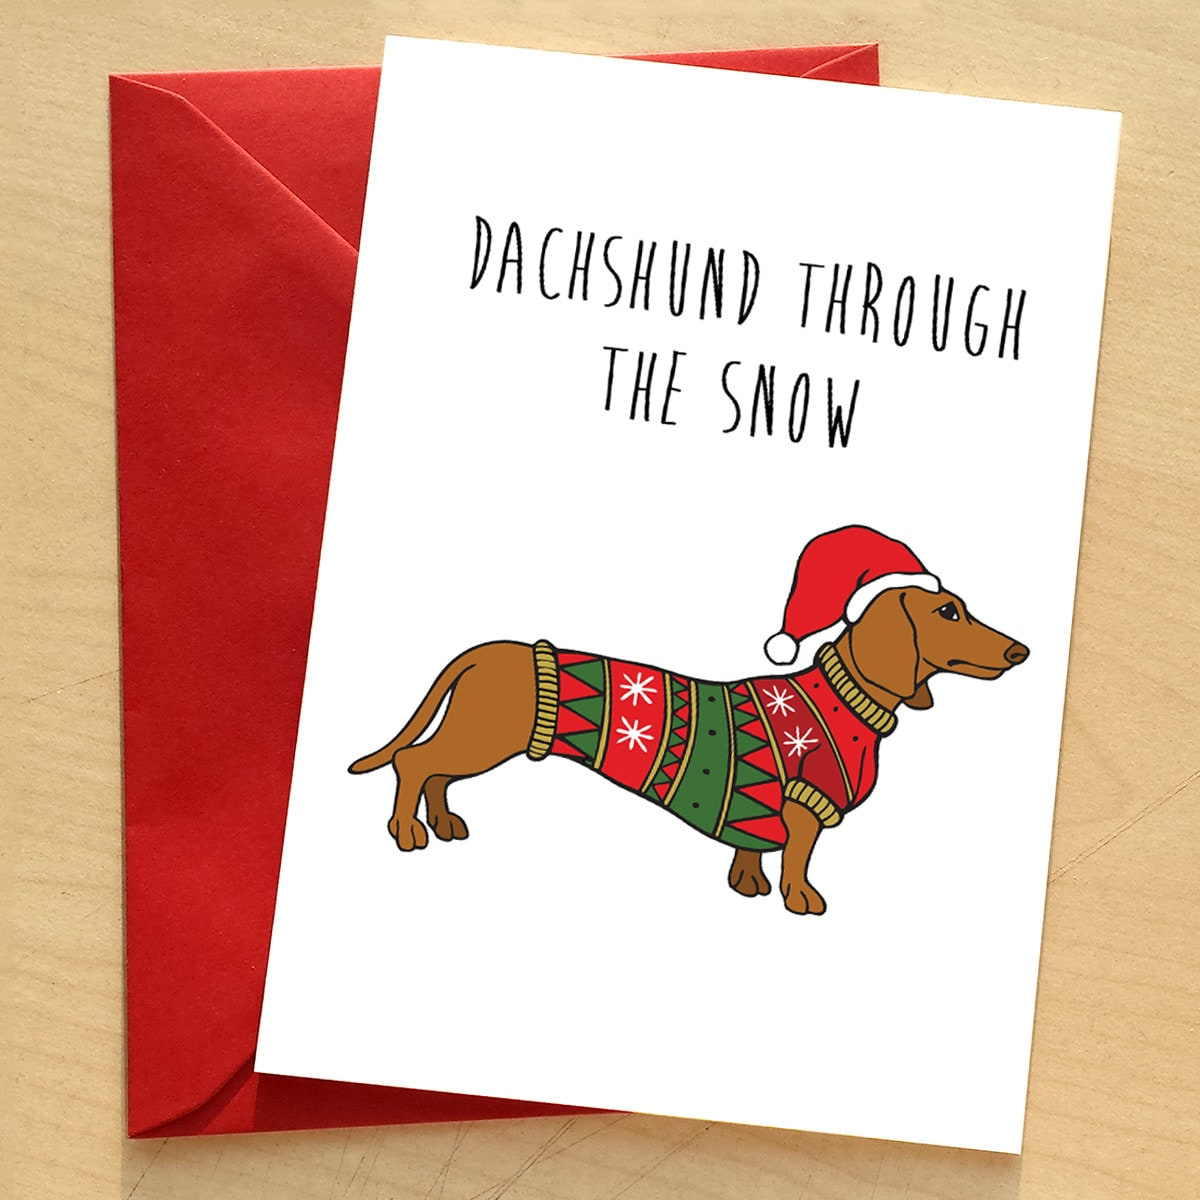 Dachshund christmas card doxie dachshund pun xmas card dog description dachshund christmas by catherine went 120x170mm greetings card kristyandbryce Image collections